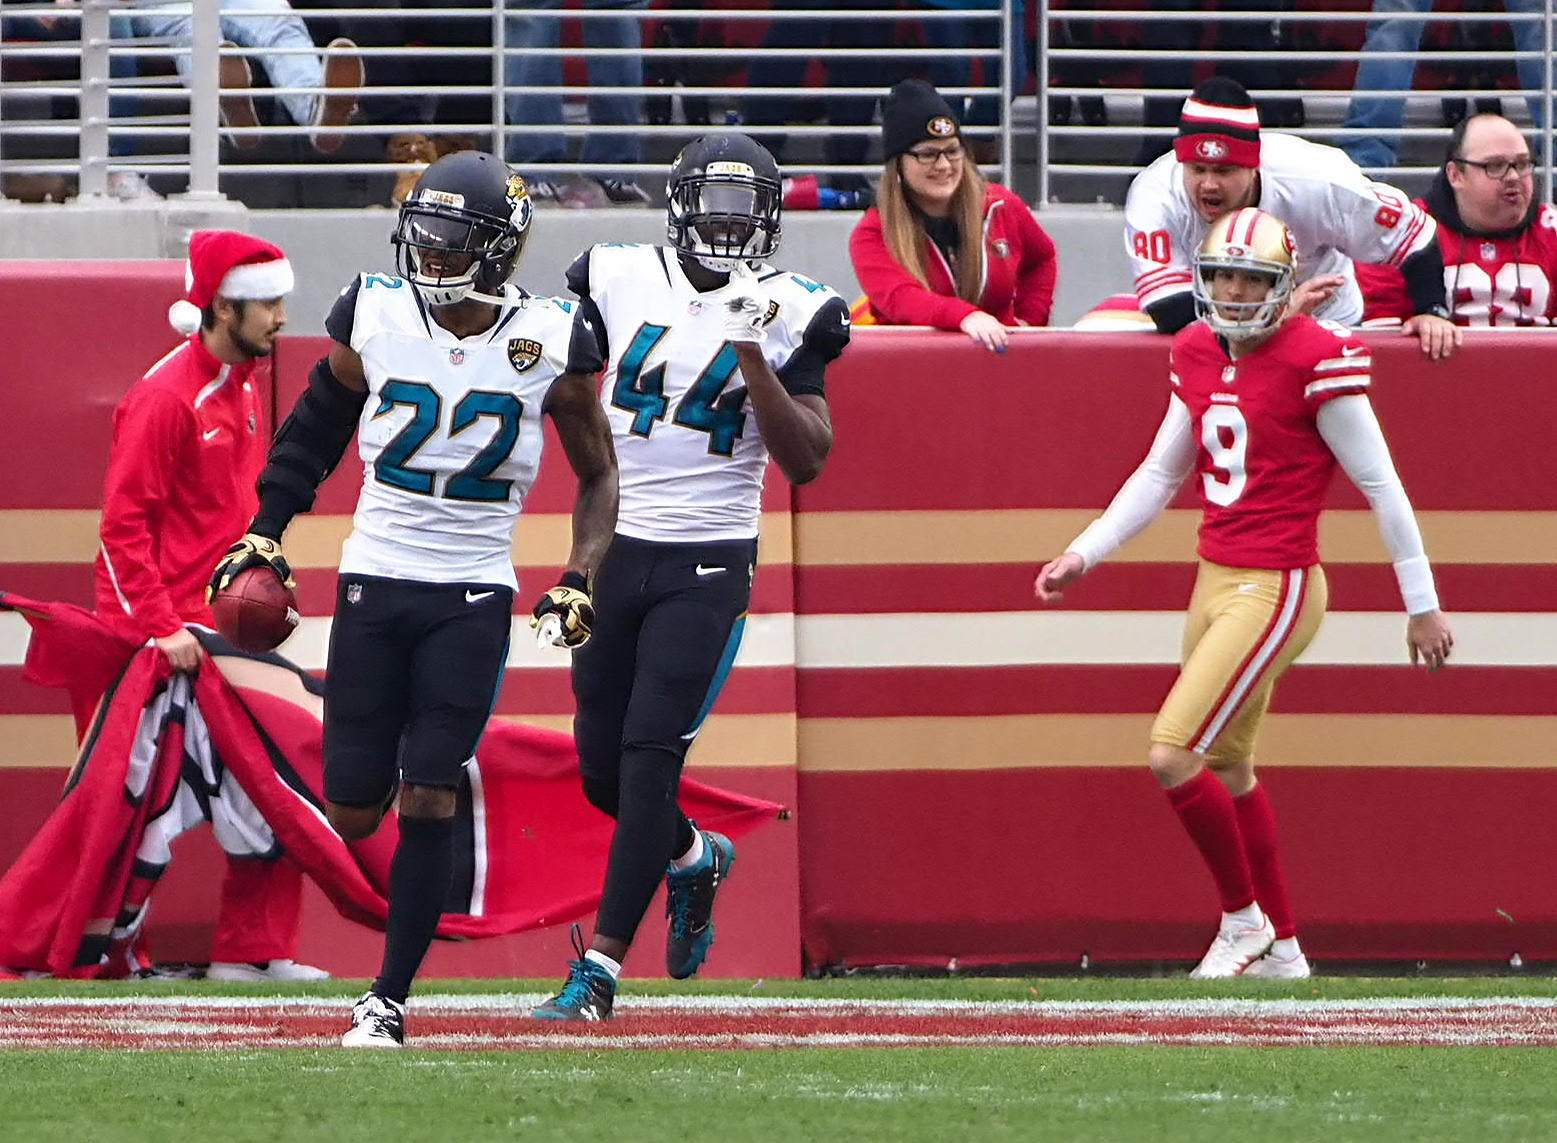 Jaguars Likely To Lose Aaron Colvin, One Of The Top Slot Corners In The NFL